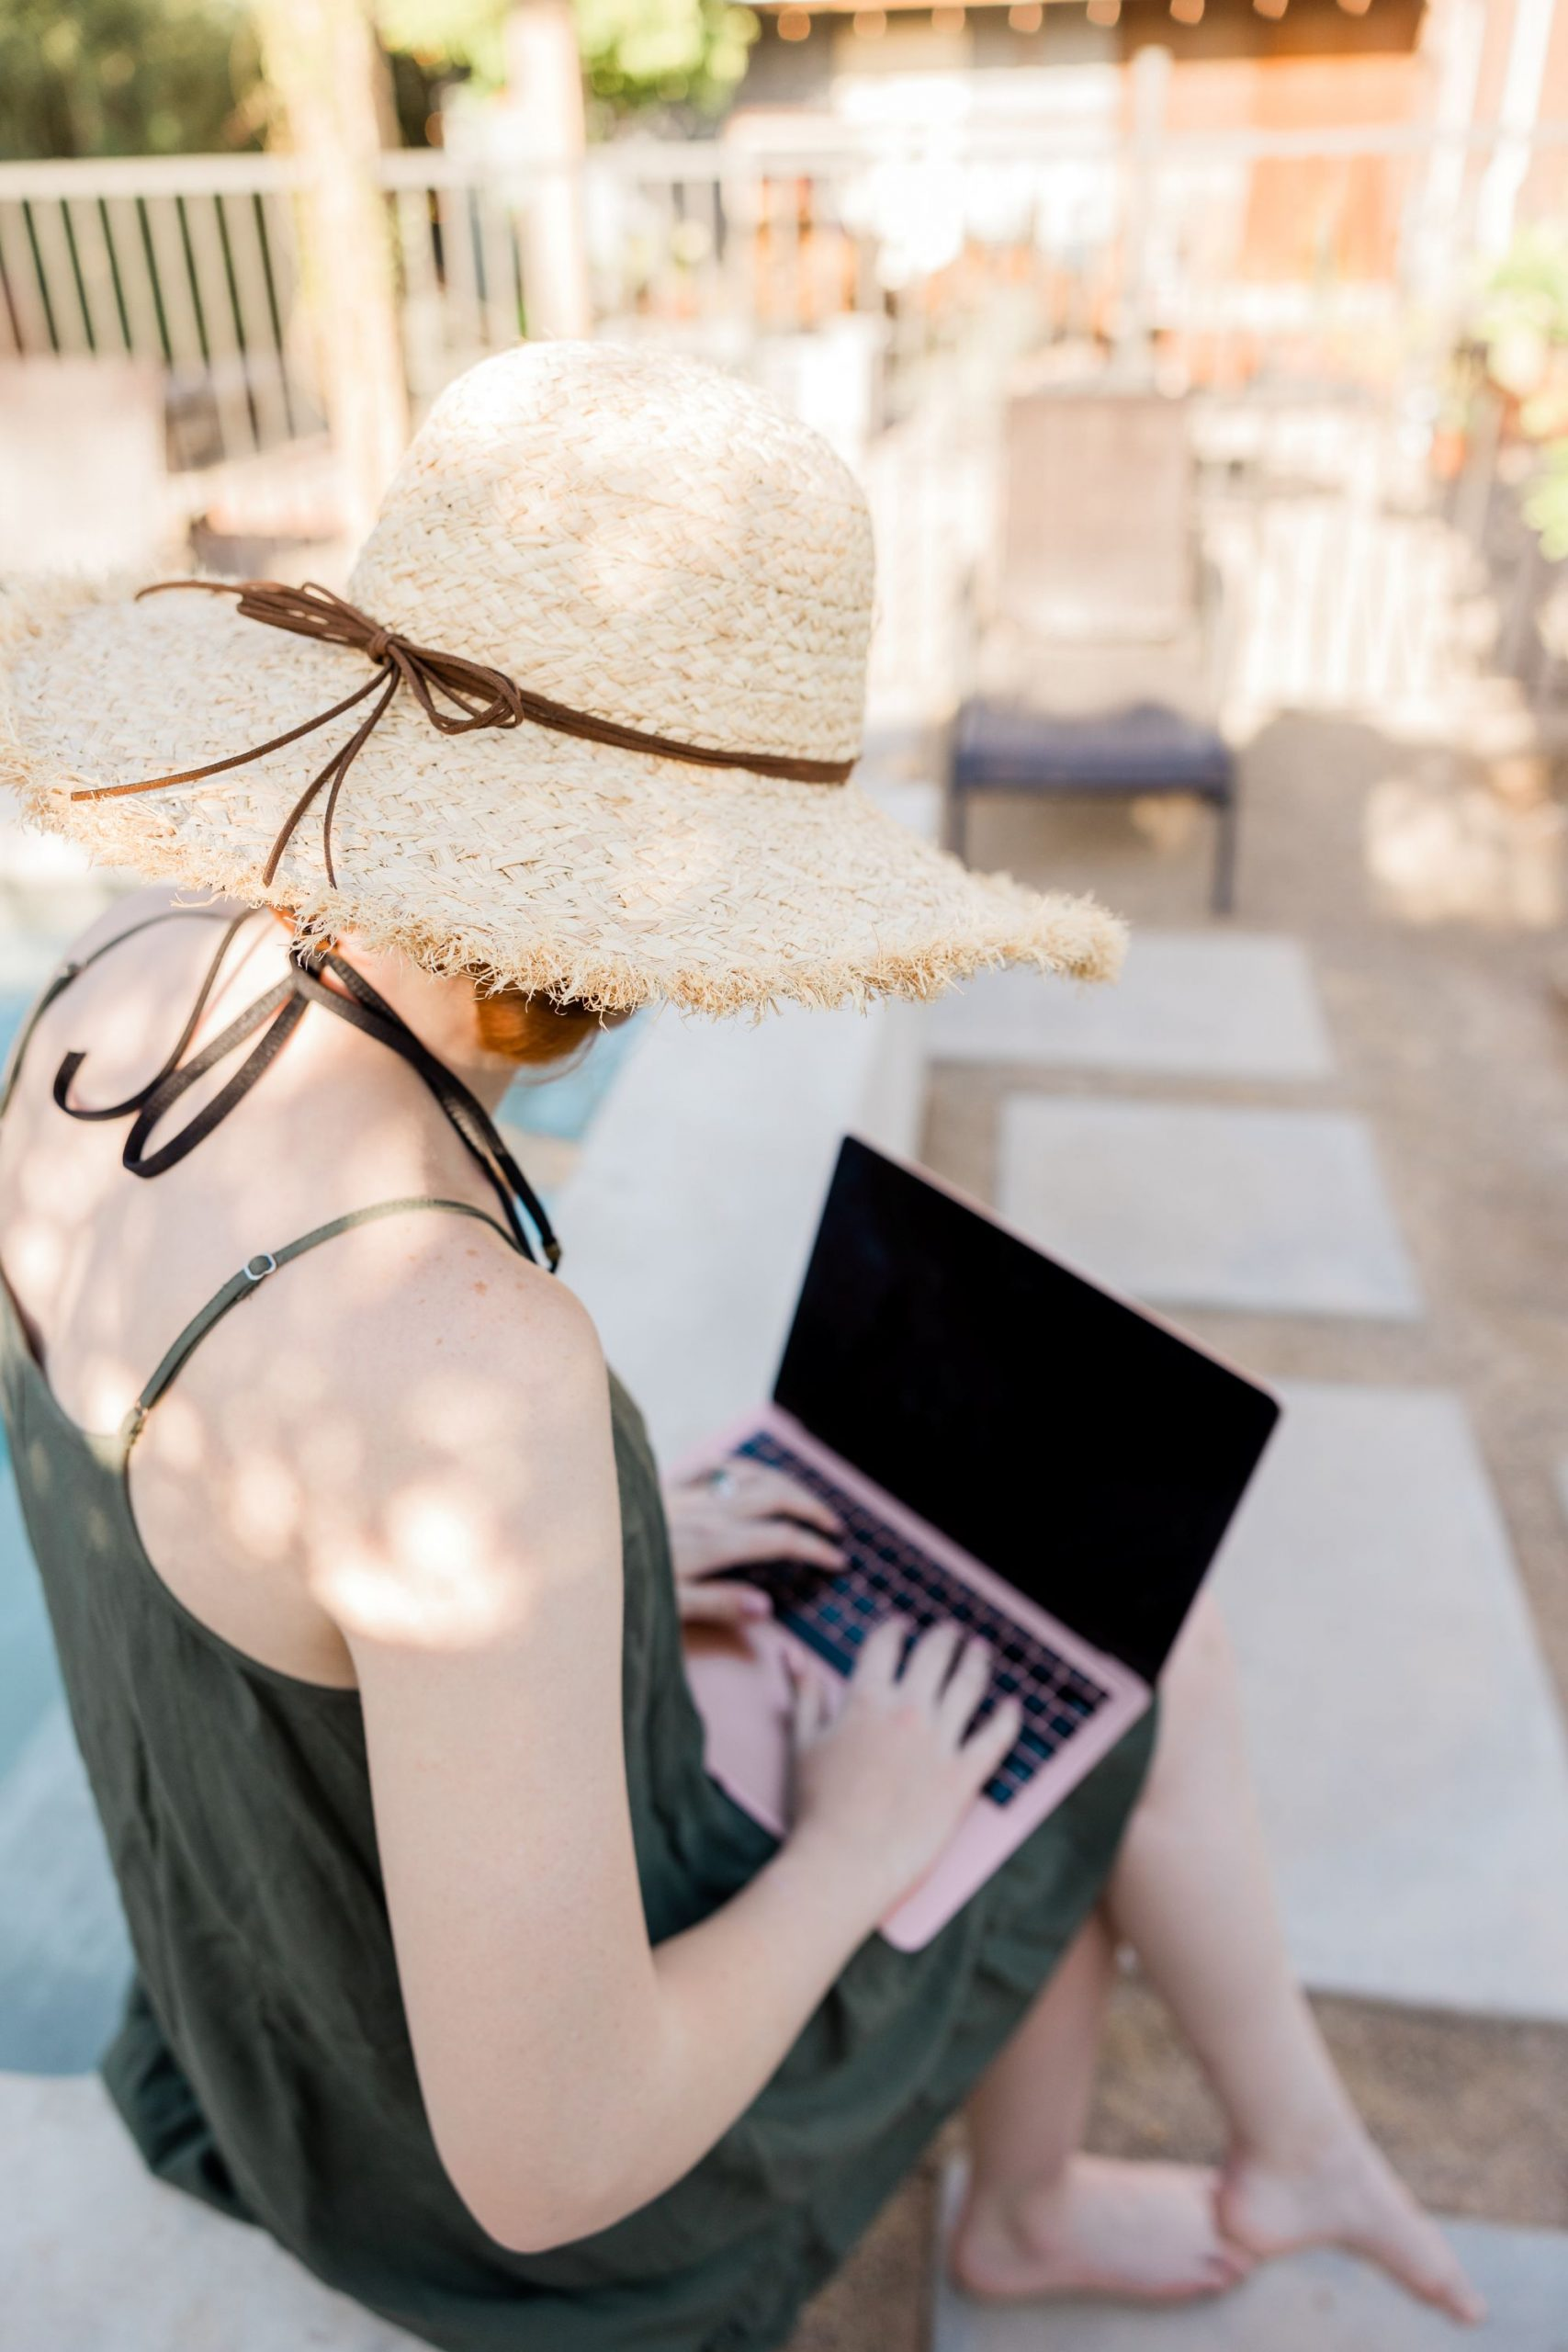 Working poolside with computer